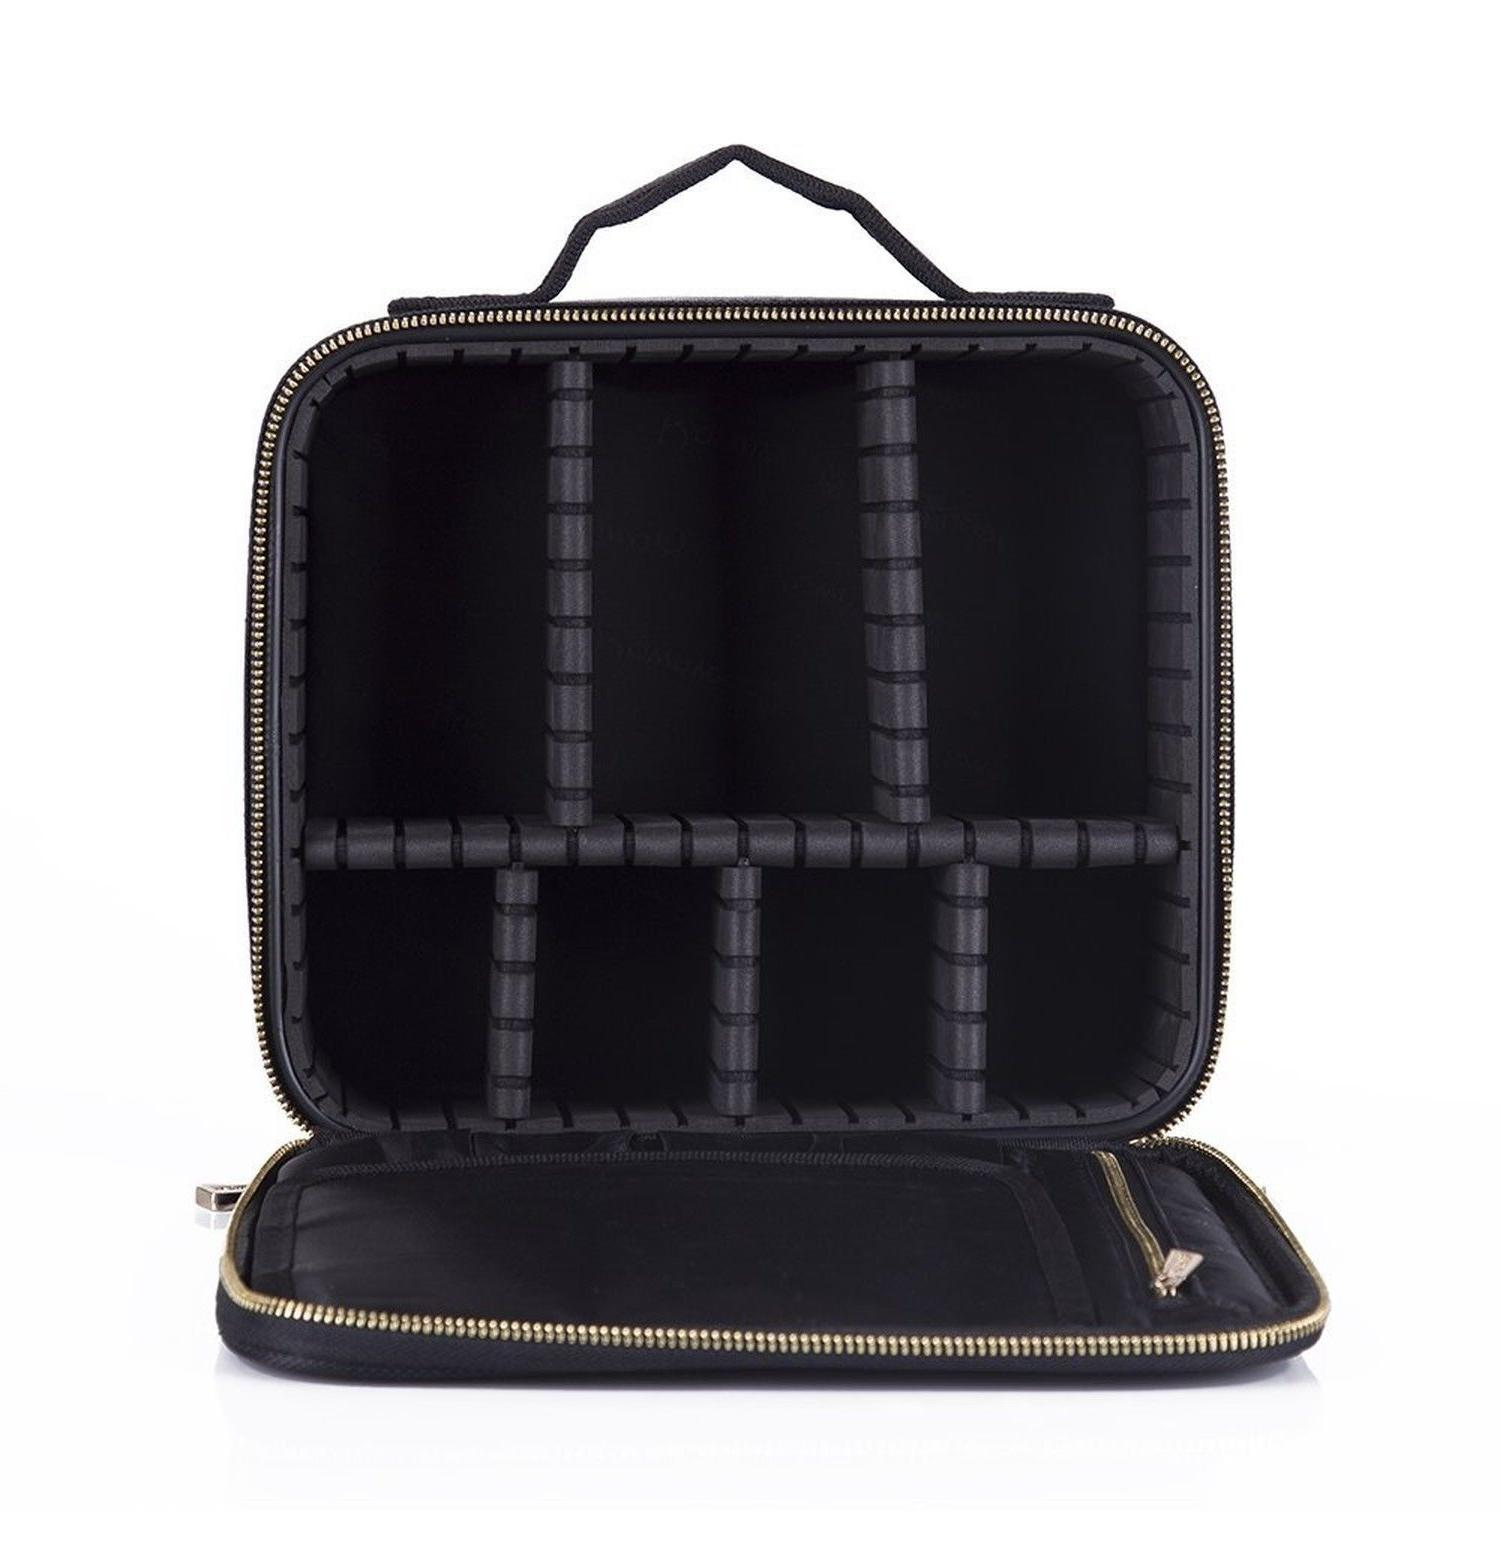 ROWNYEON Professional Makeup Case/Travel Bag